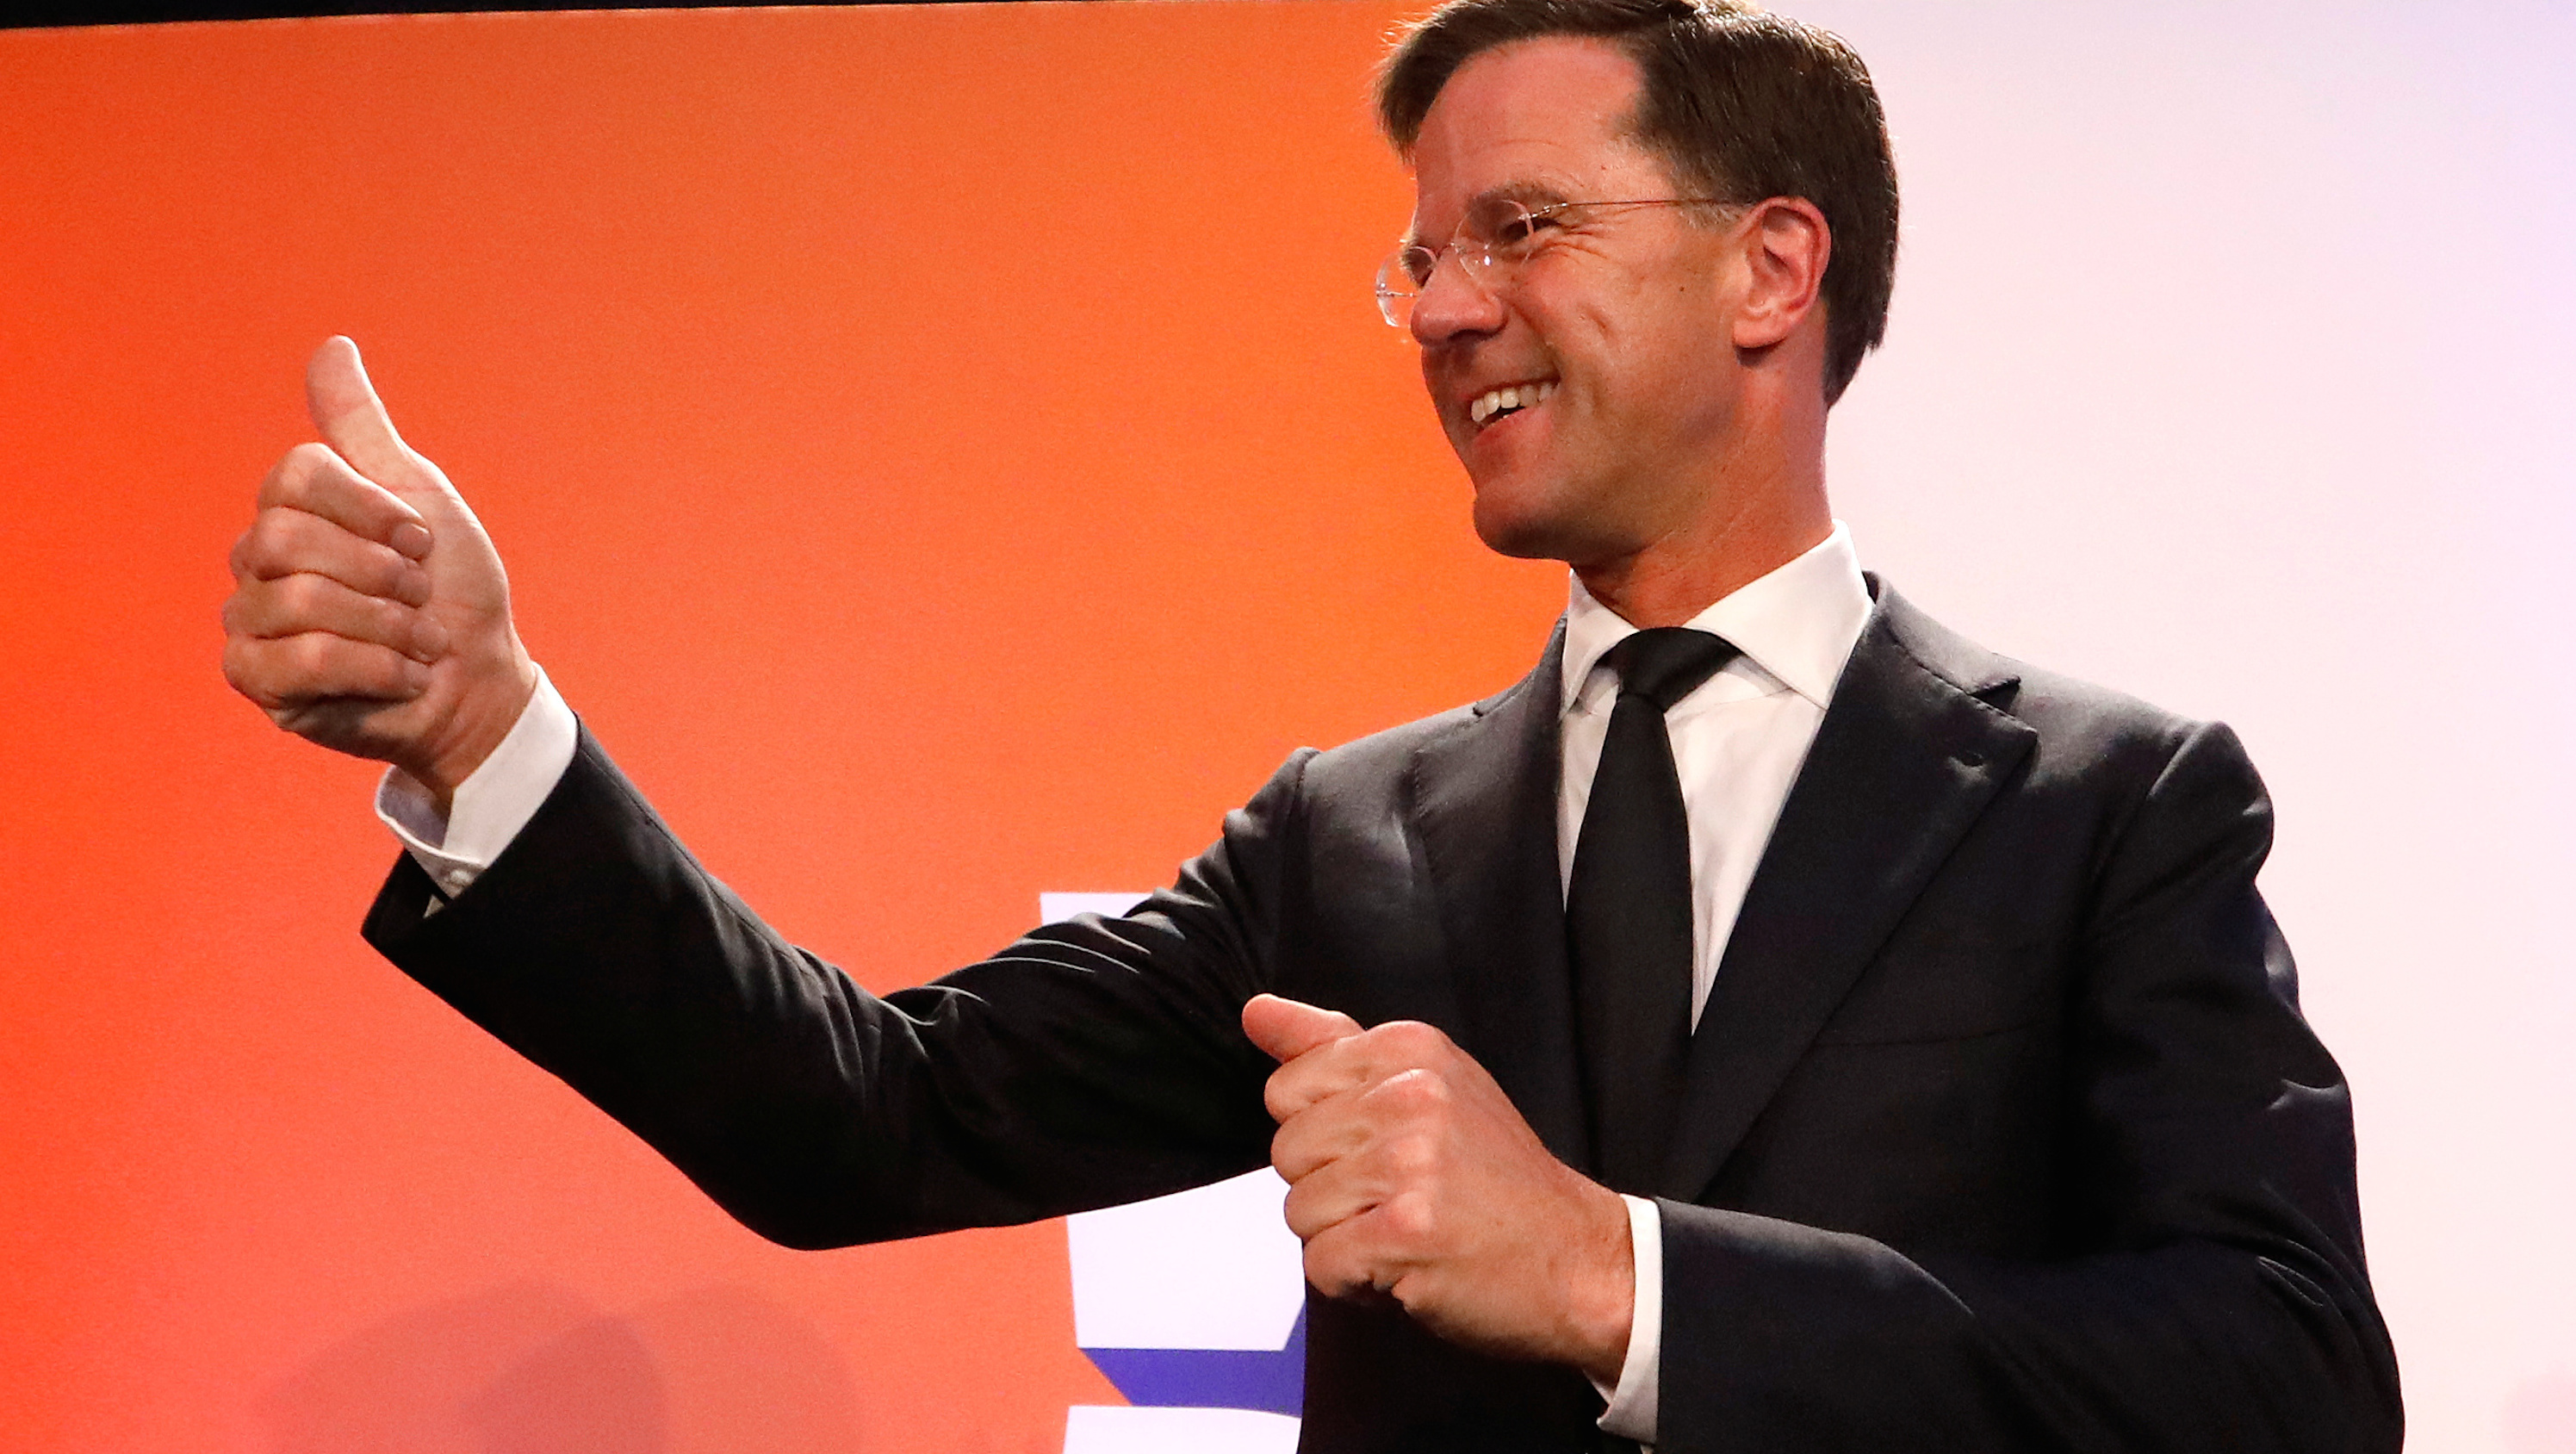 Dutch Prime Minister Mark Rutte of the VVD Liberal party appears before his supporters in The Hague, Netherlands, March 15, 2017.